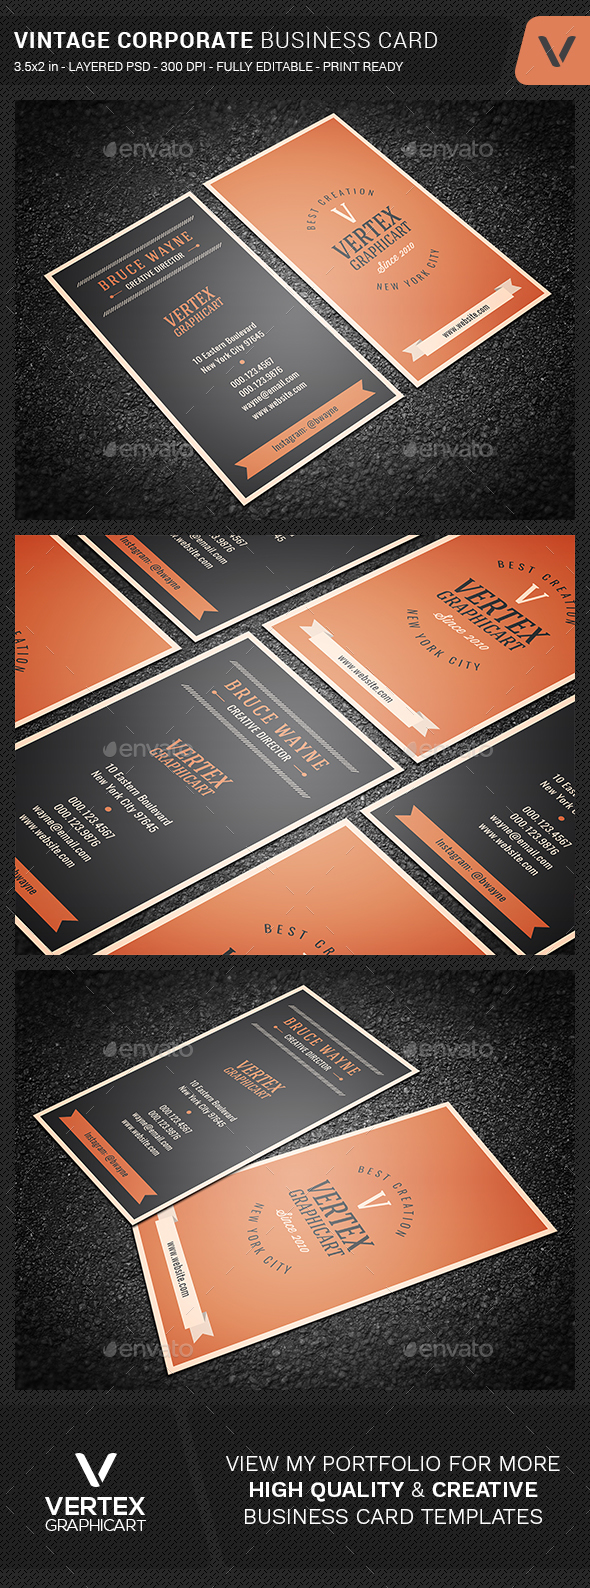 GraphicRiver Vintage Corporate Business Card 20430352